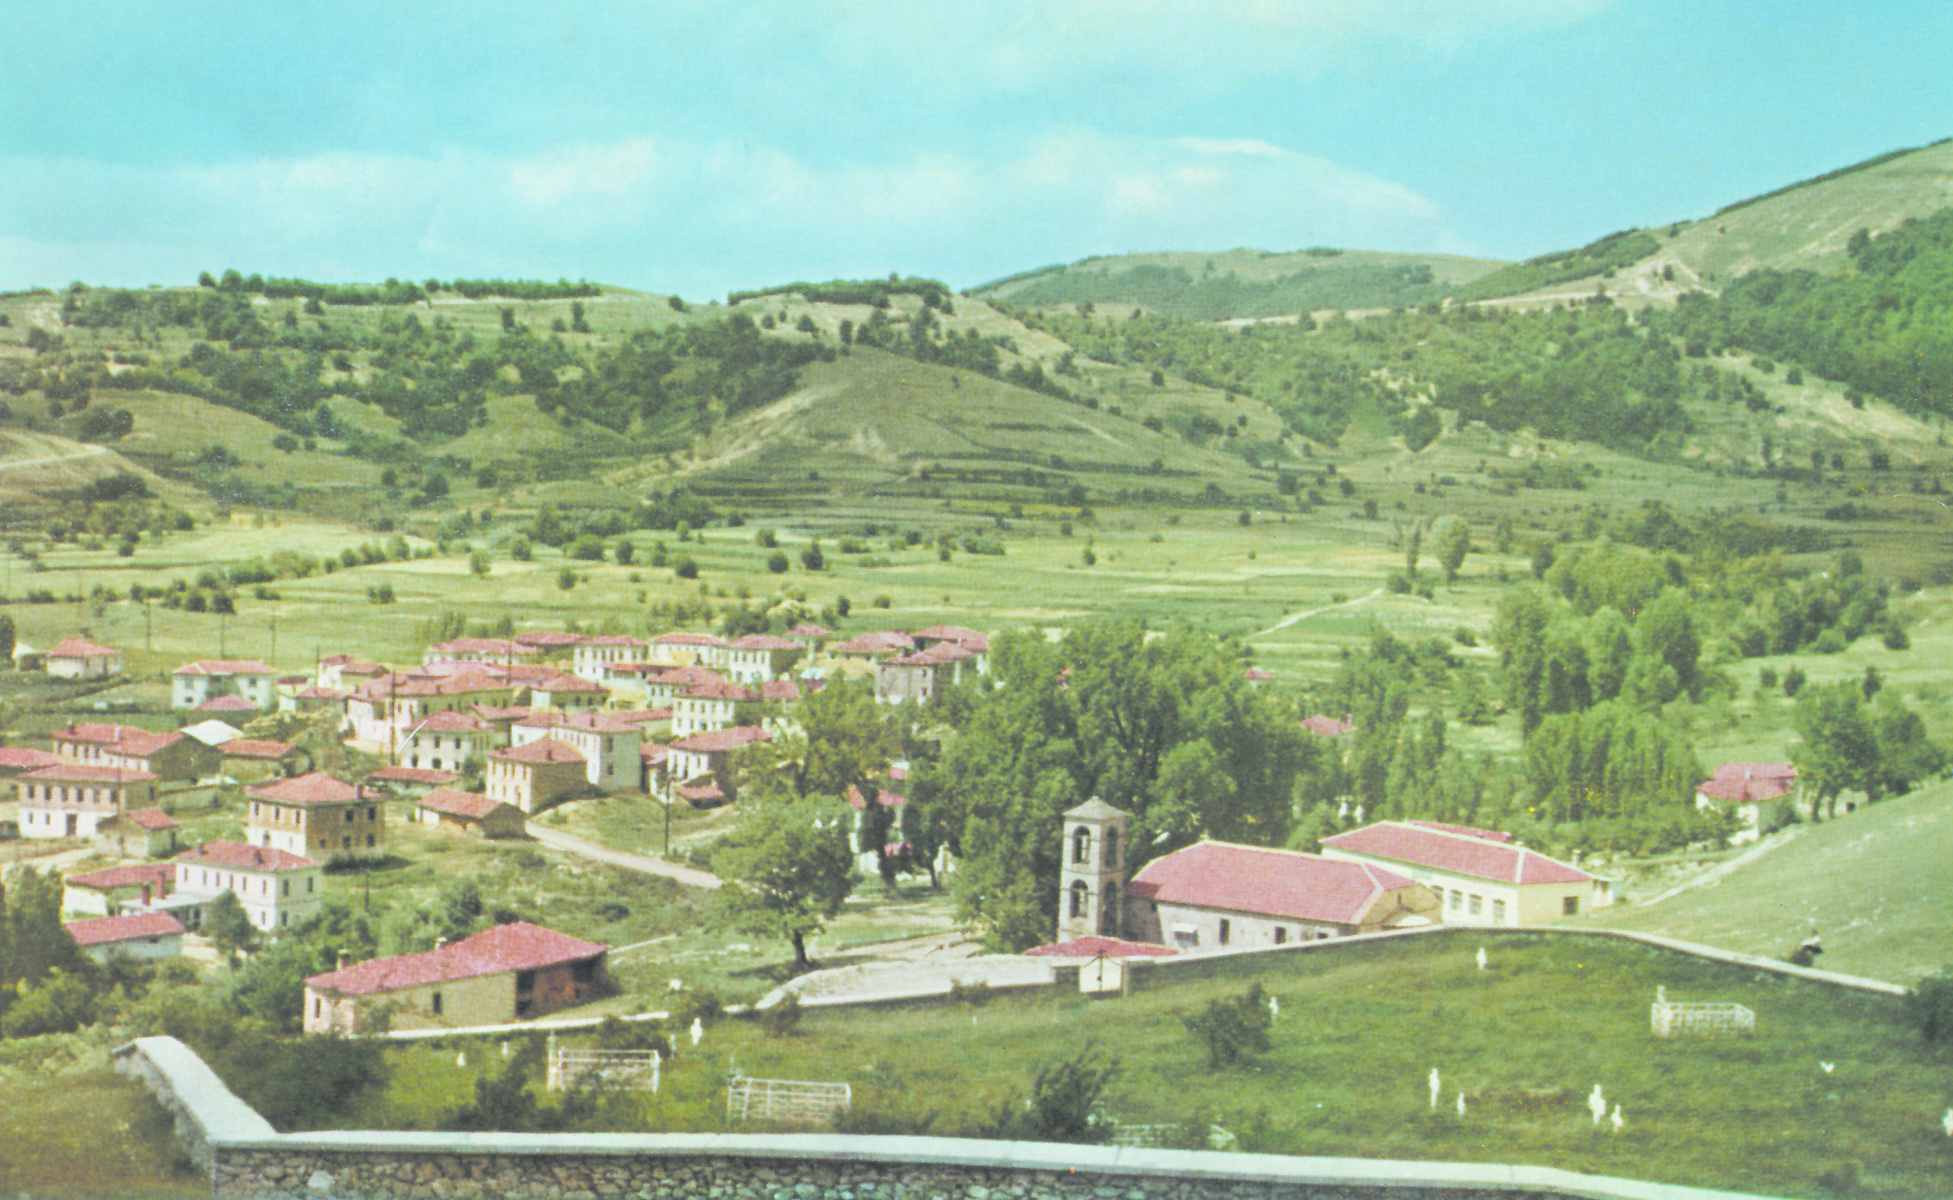 The Village of Chereshnitsa (Polykerasos)